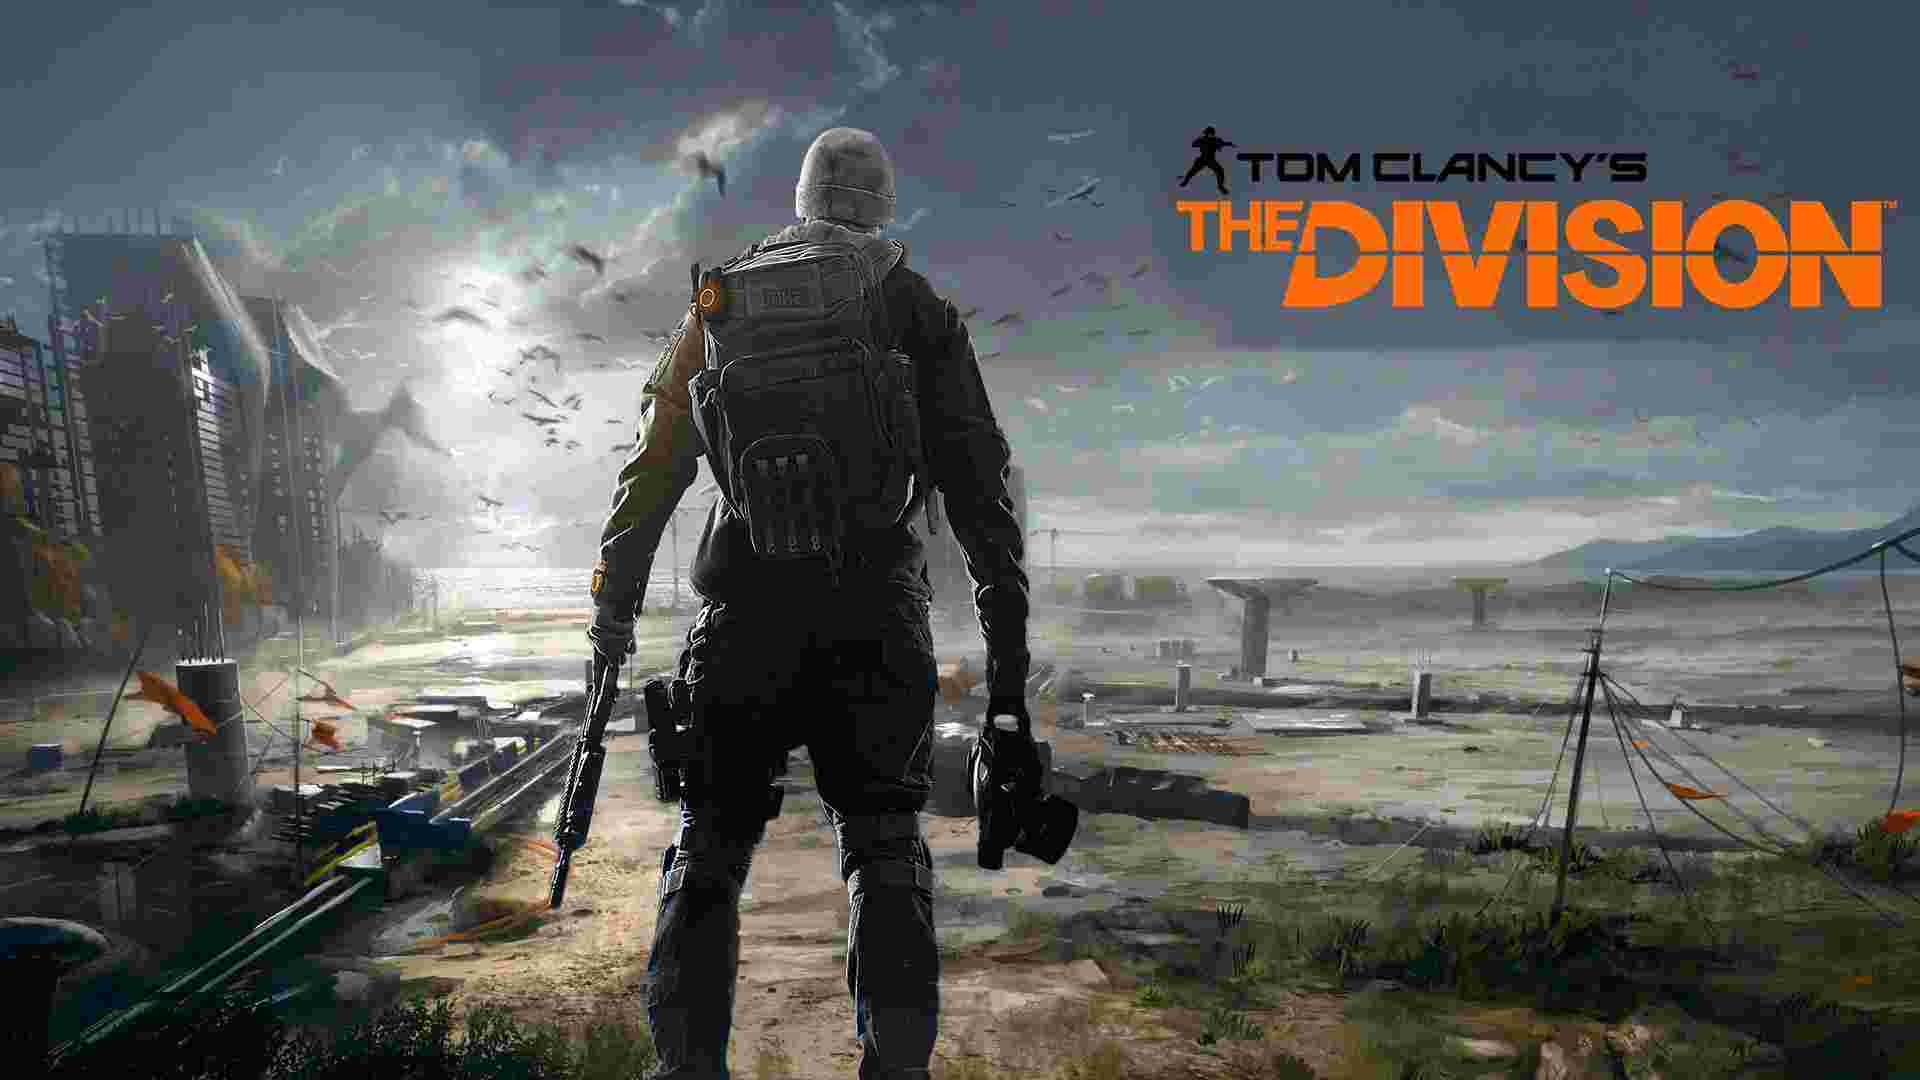 http--www.gamegpu.ru-images-2015-oktjabr-tom-clancy-s-the-division-sistem-gereksinimleri